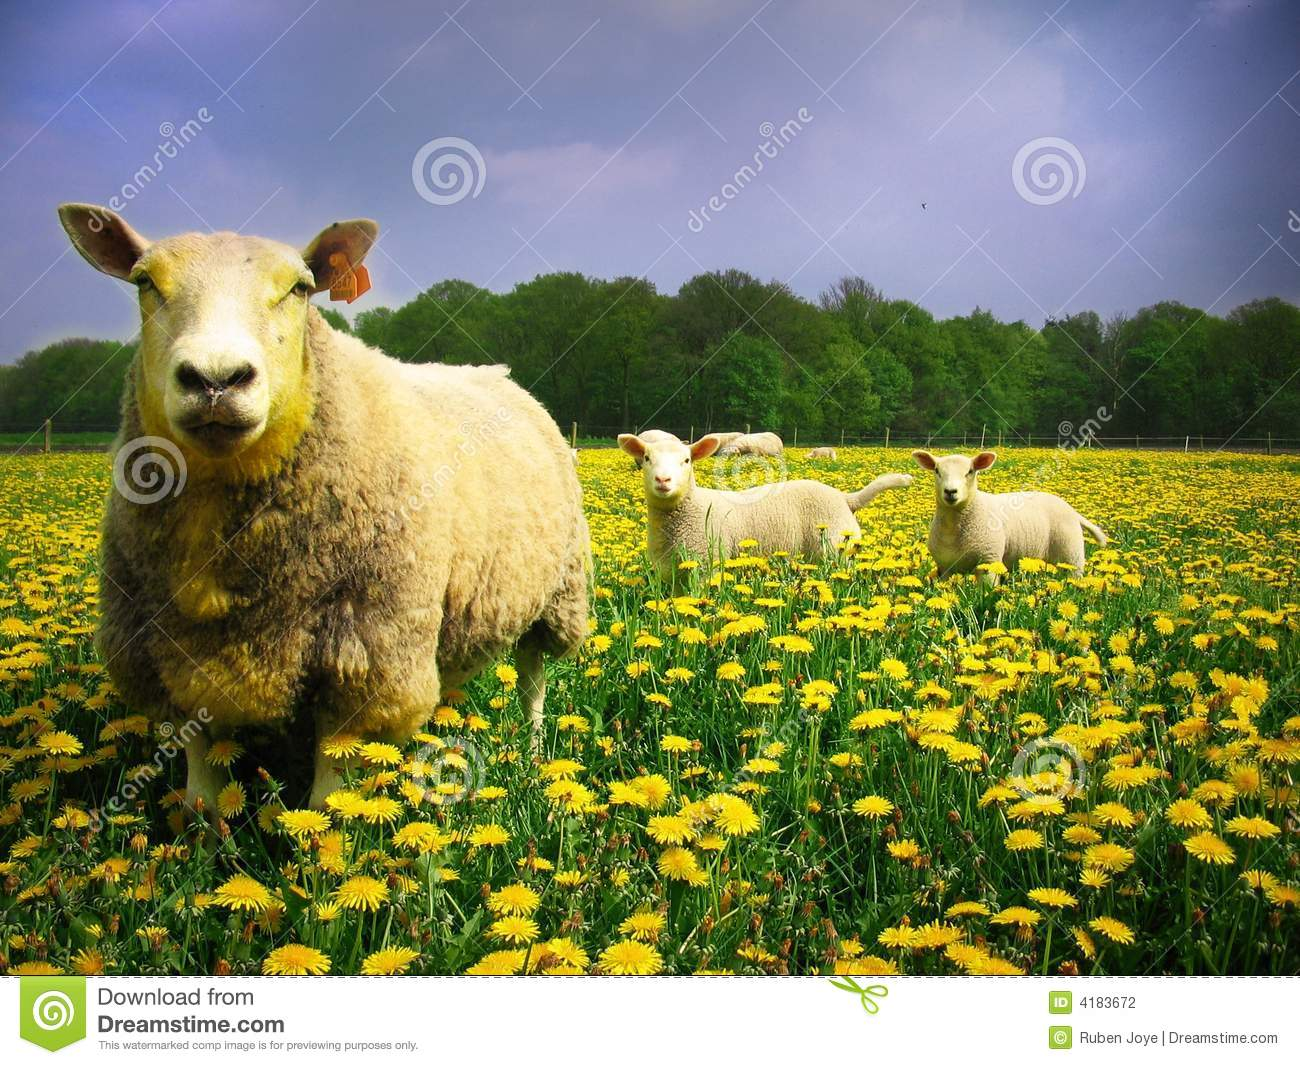 Sheeps and lambs